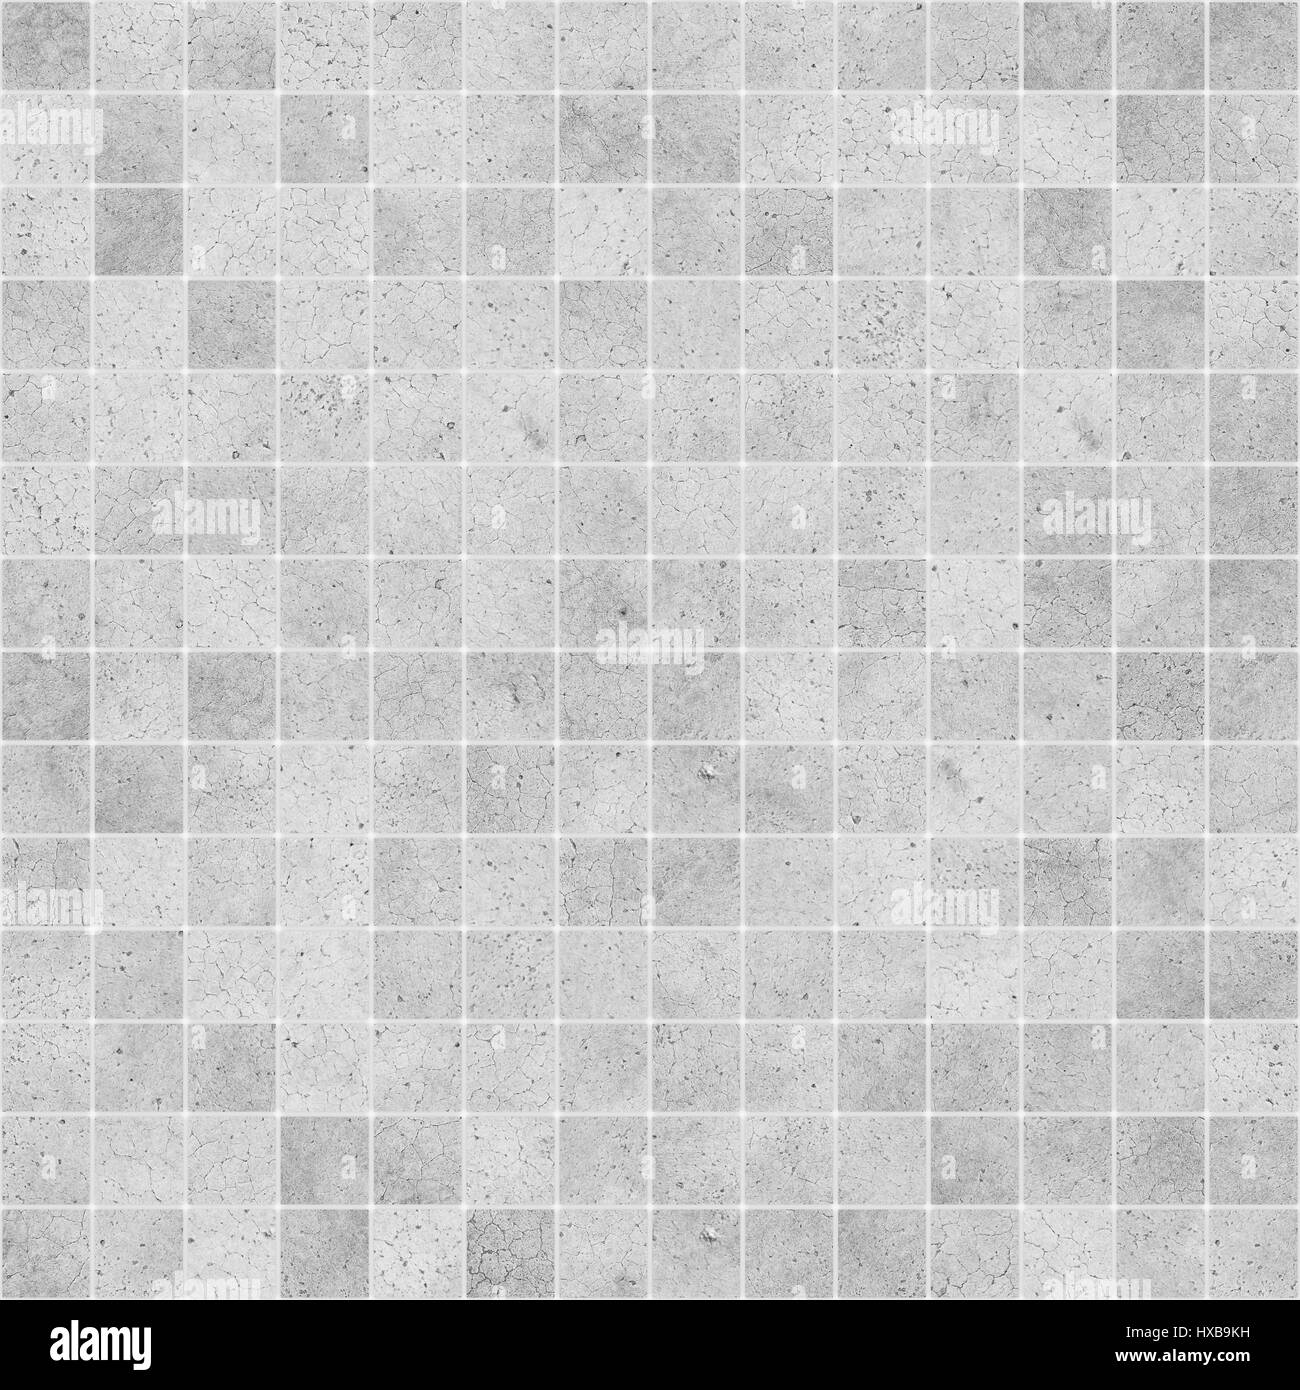 How To Decorate My Home Concrete Mosaic Tile Seamless Texture Stock Photo